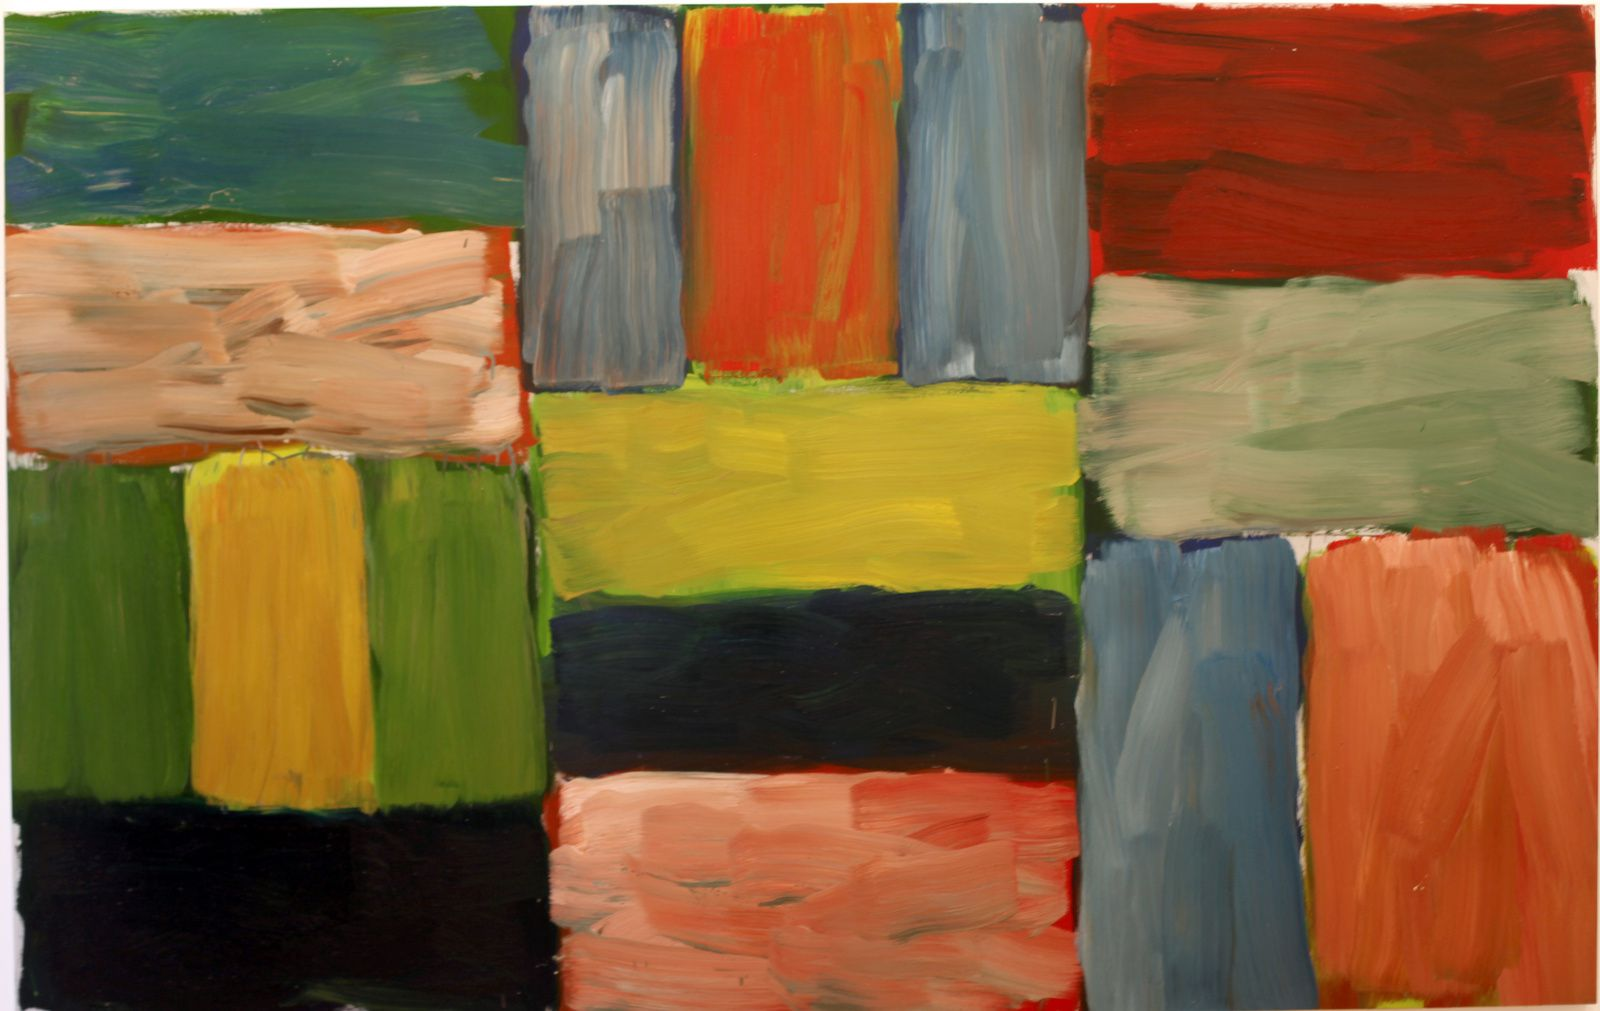 Sean SCULLY - Courtesy Galerie Lelong © Photo Éric Simon